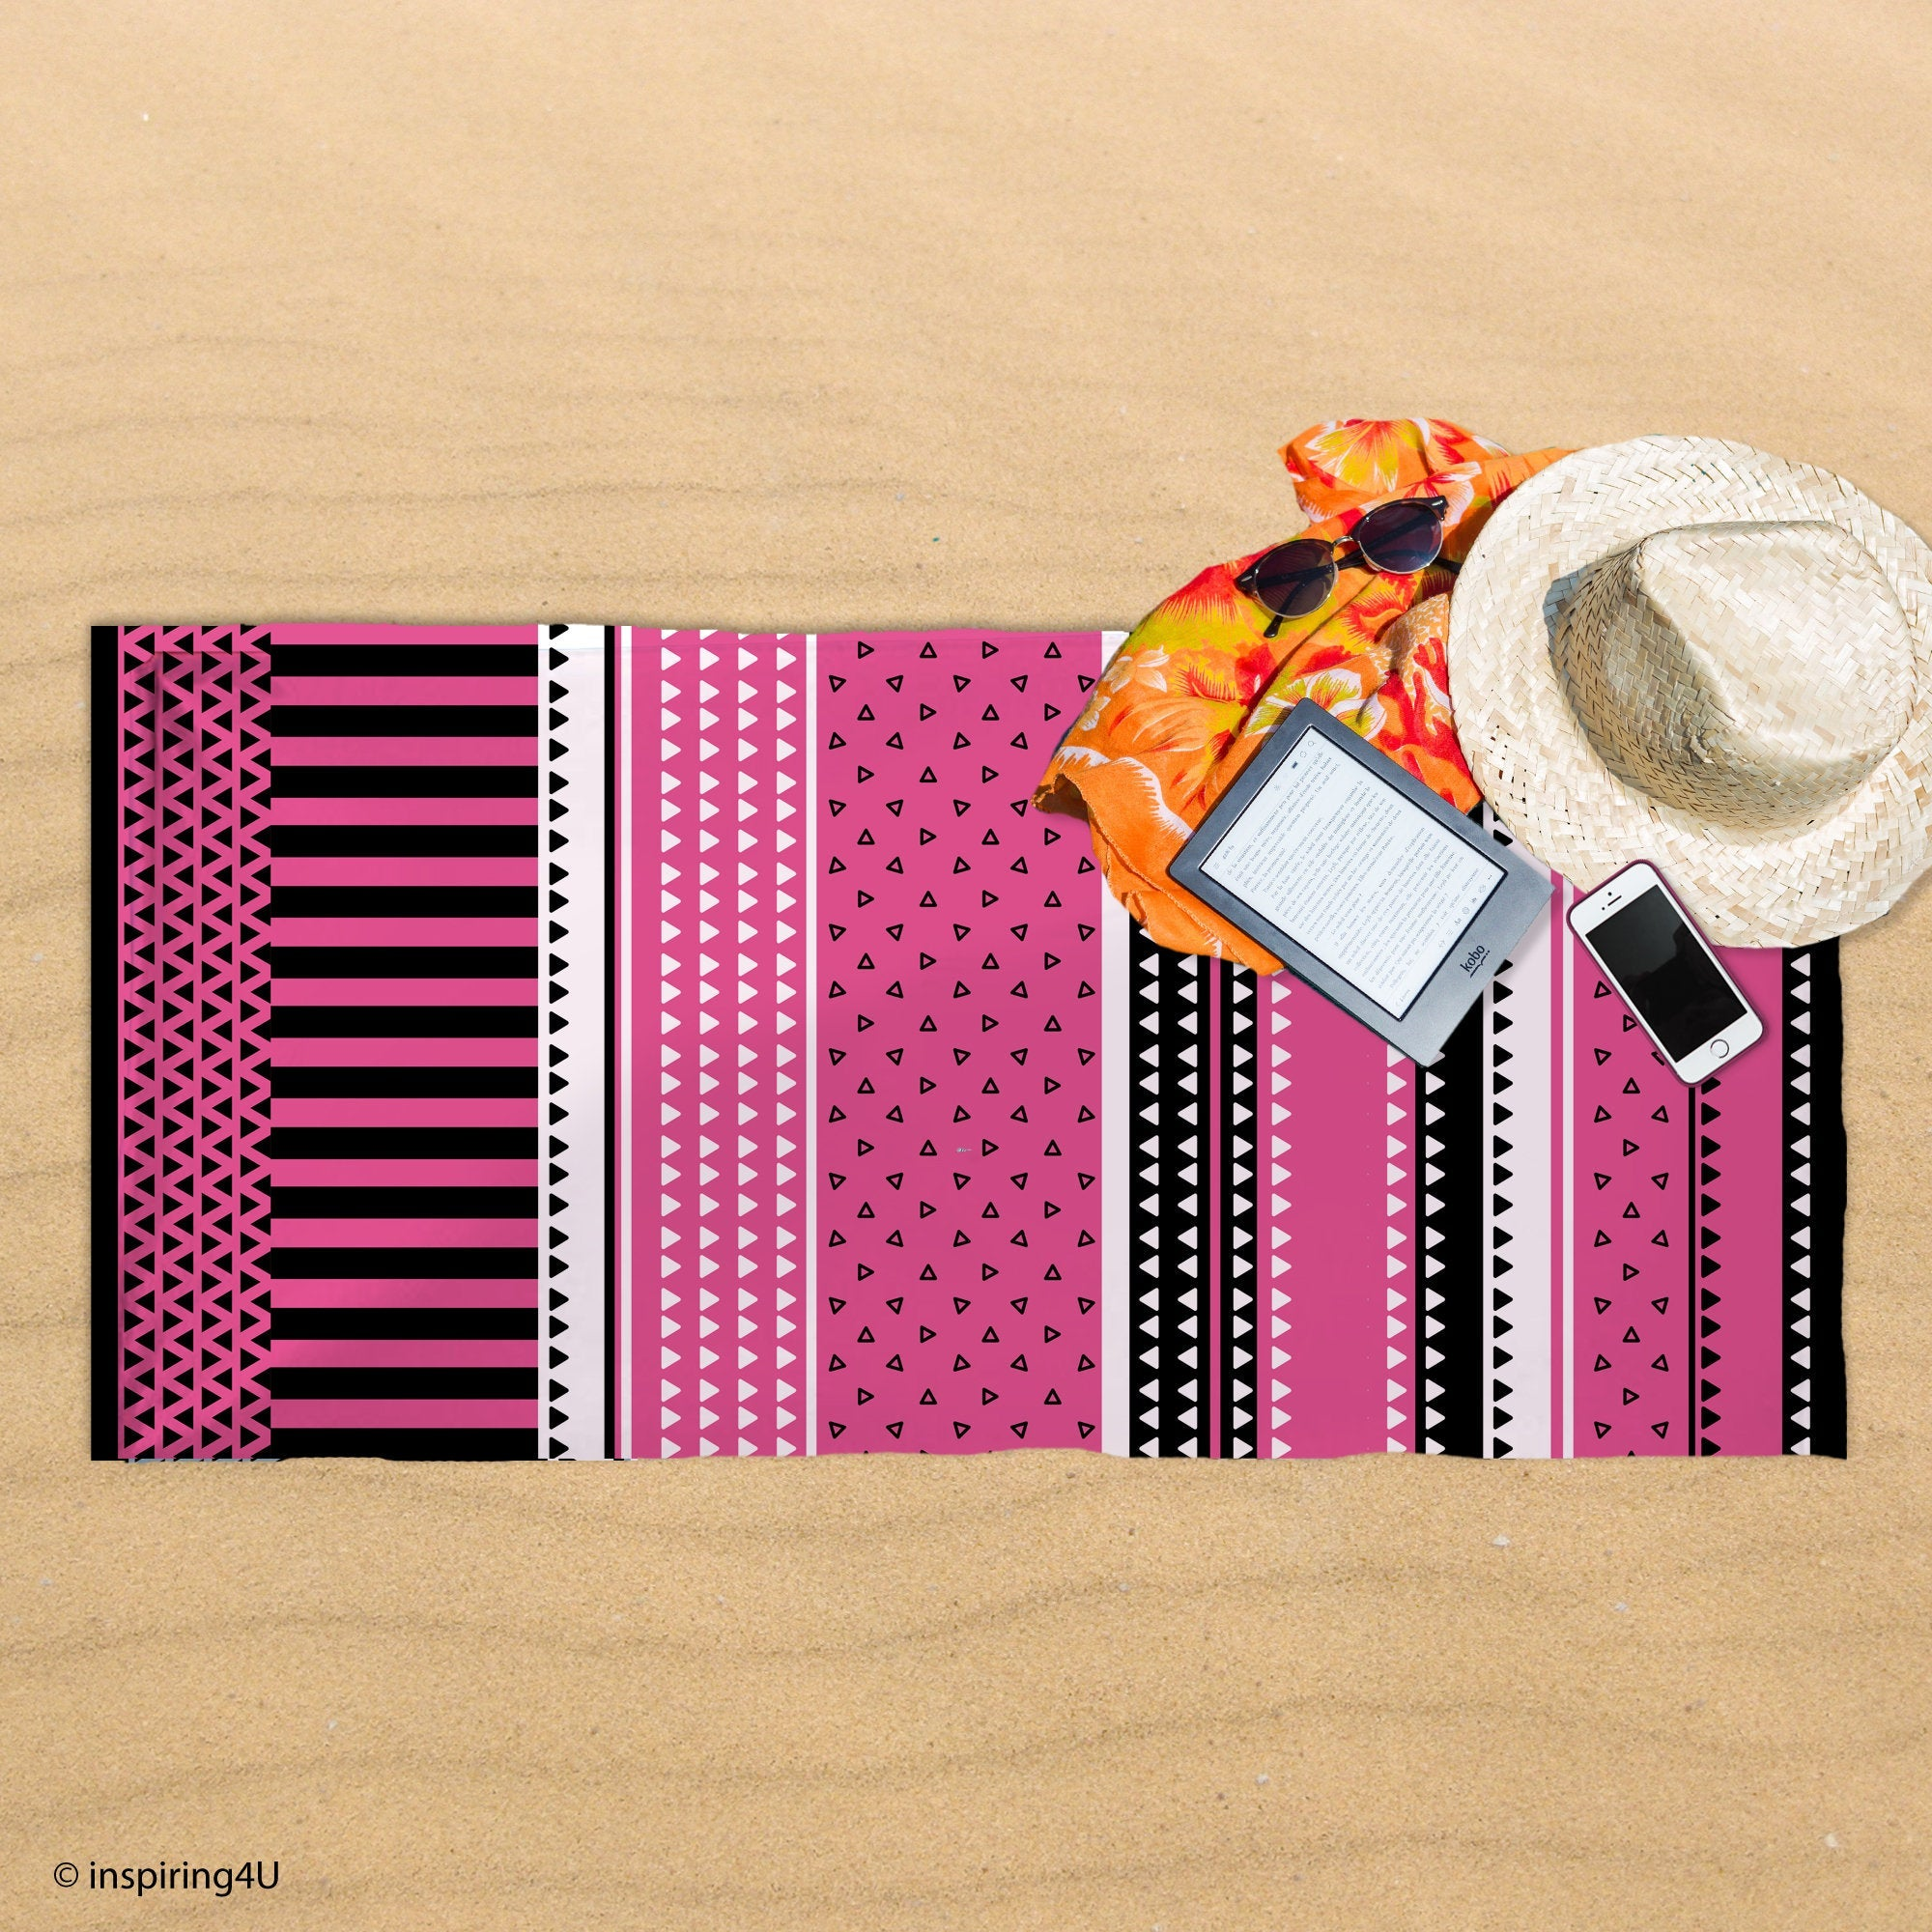 Pink Cotton Towel. Super Soft Sea Beach Towel. Black and White Texture Pool Towel. Gift for Her.